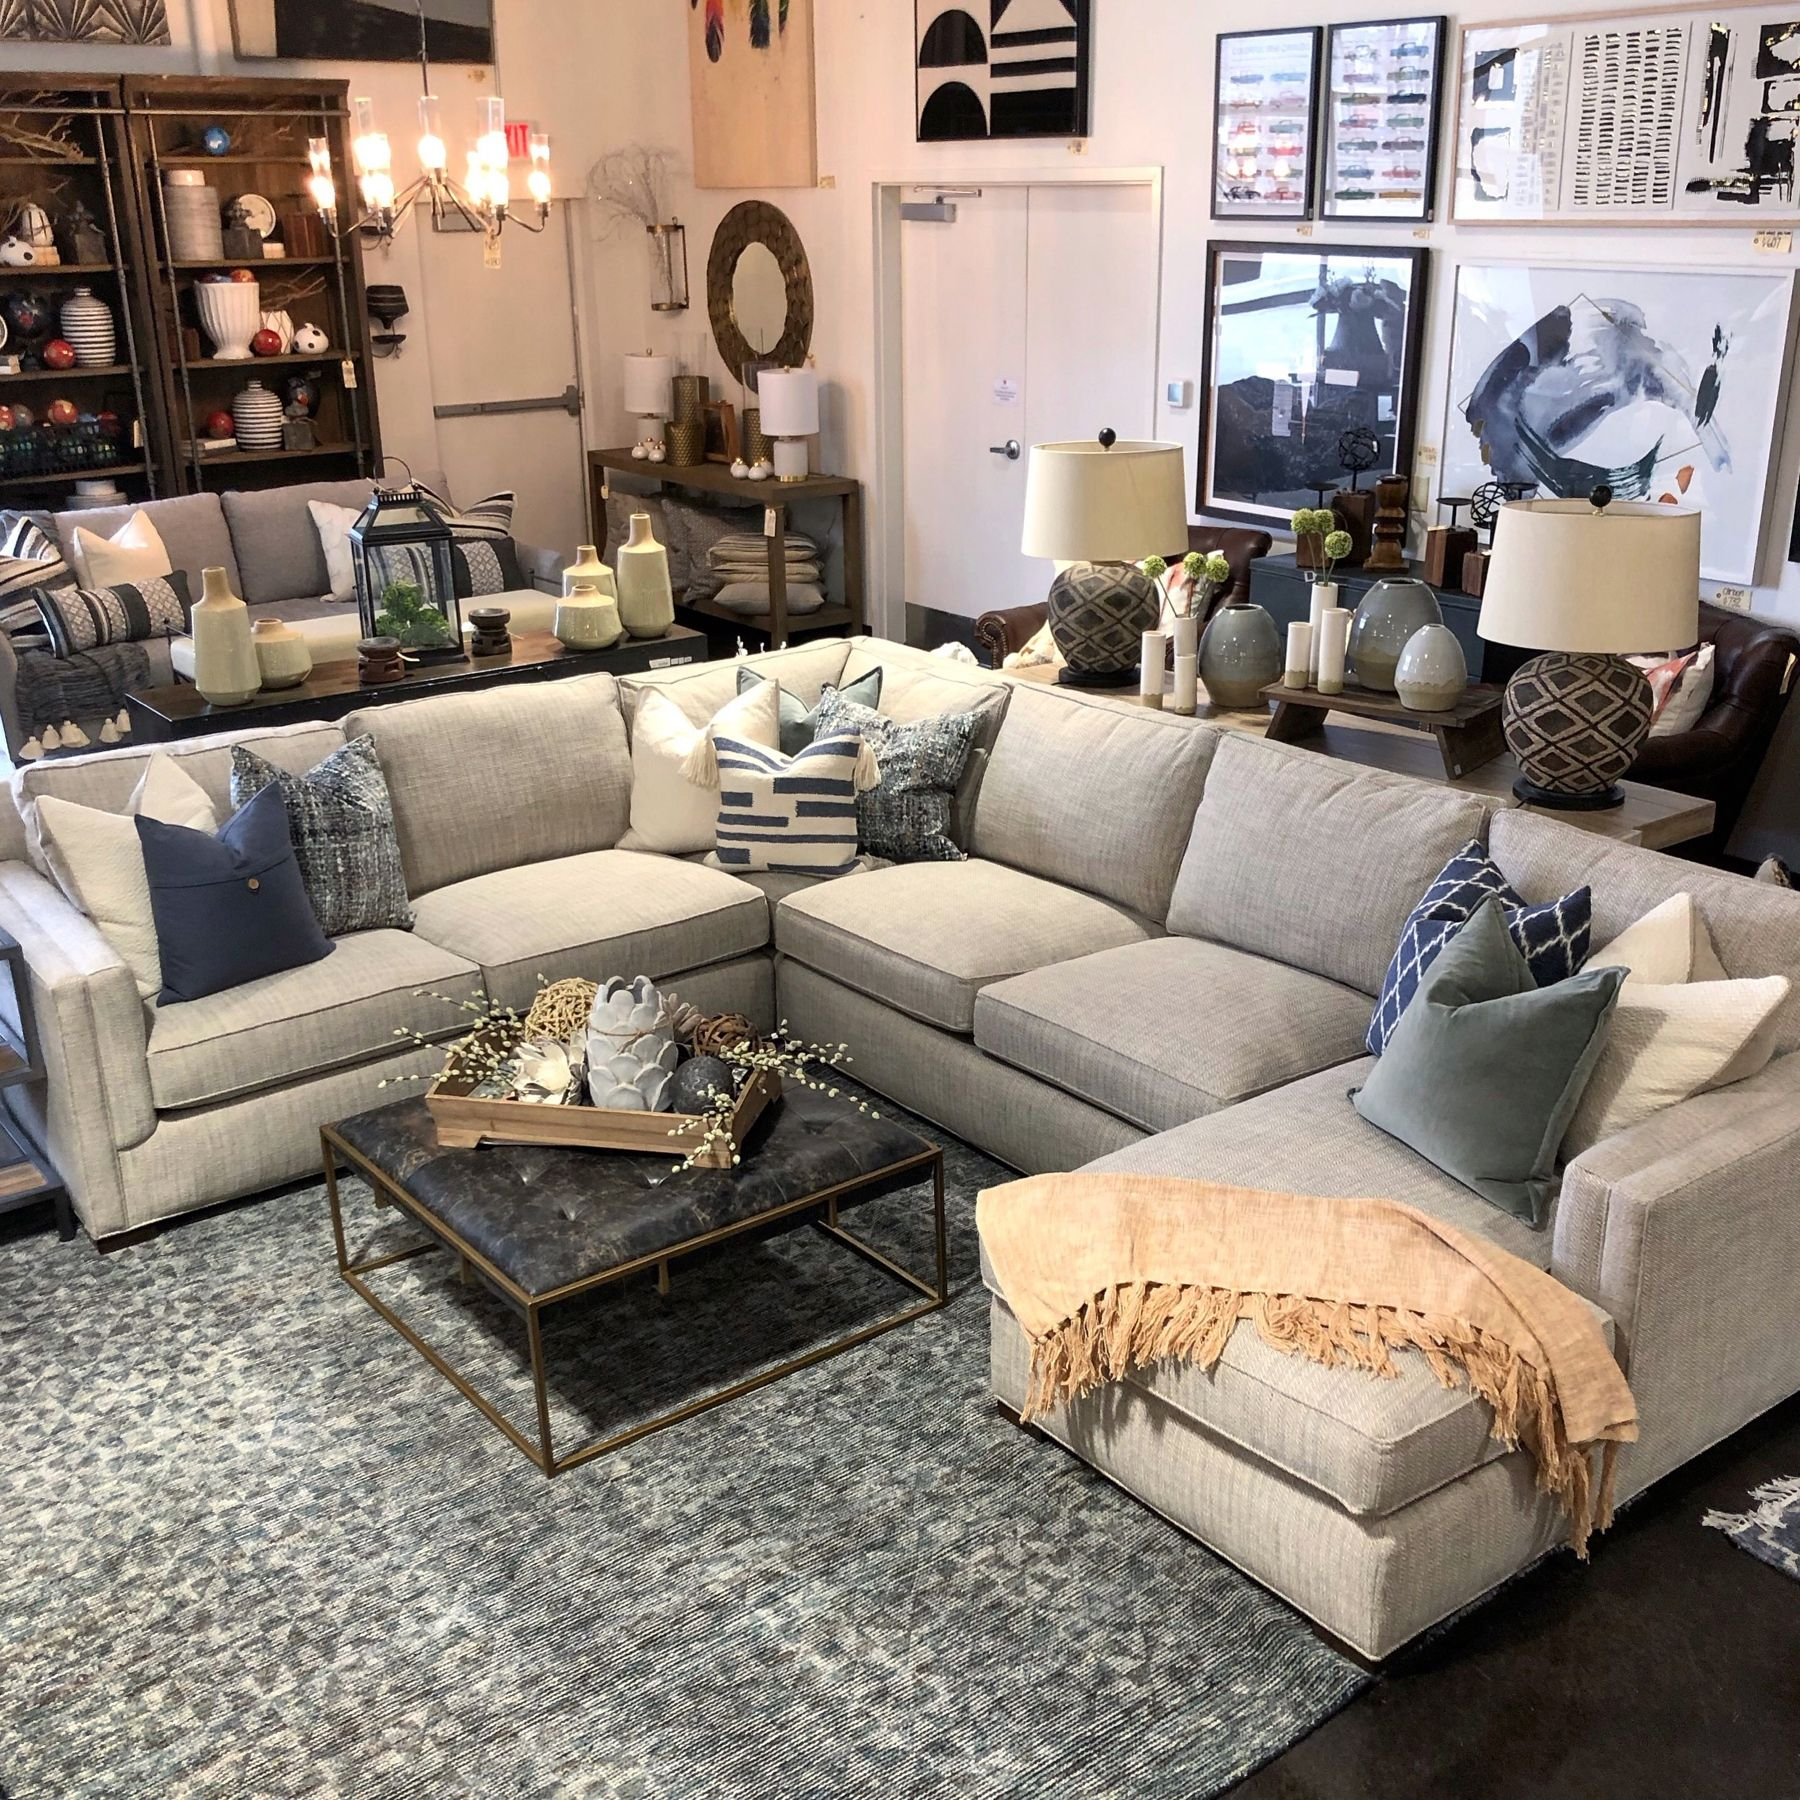 Cozy Up With Your Favorite Accent Pillows And A Soft Throw On The Sophie Sectional Throw Pillows Living Room Couches Living Living Room Sectional